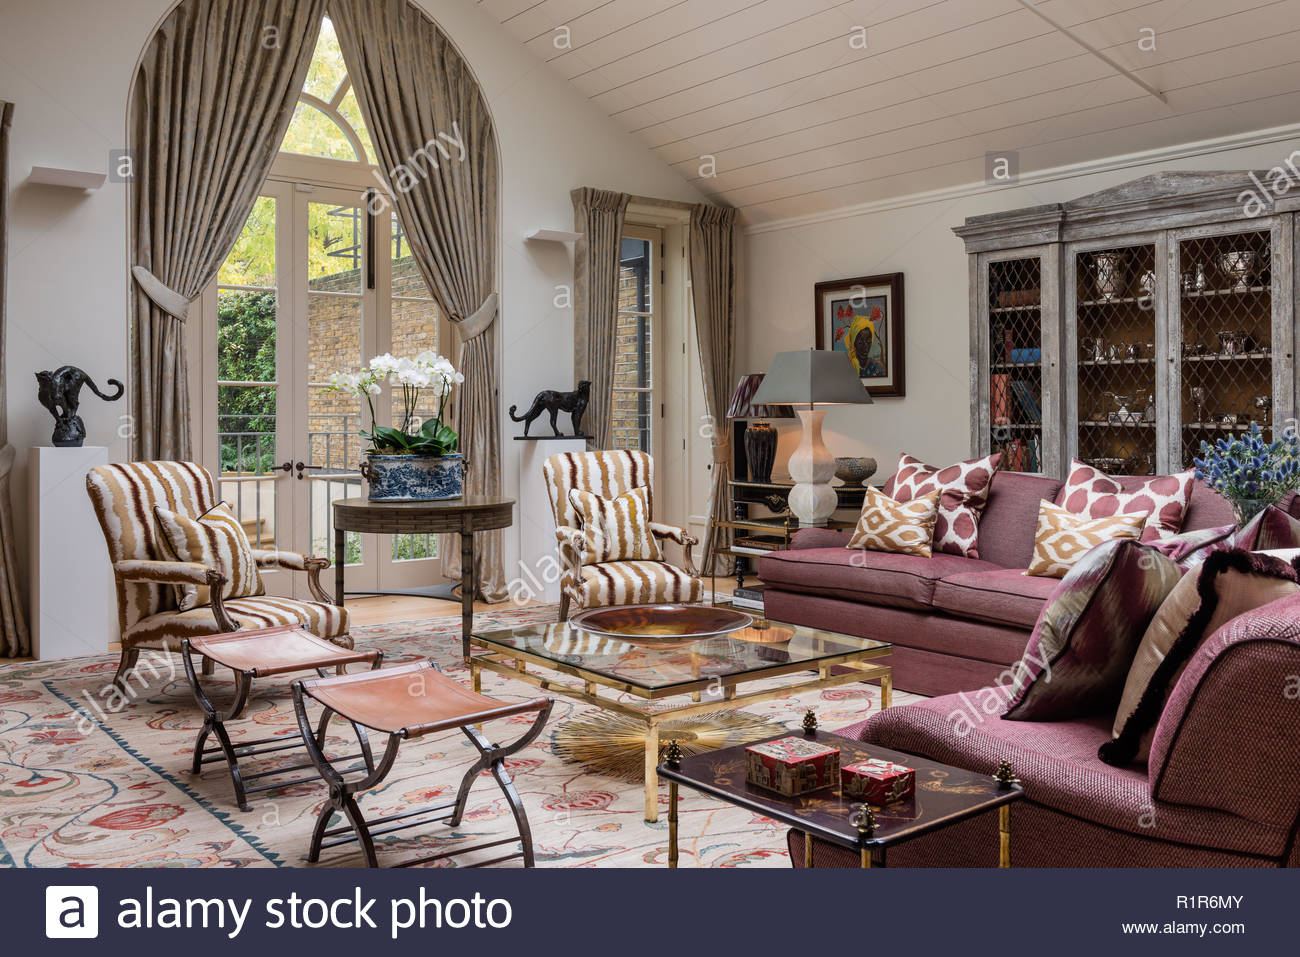 Country style living room with tieback curtains - Stock Image